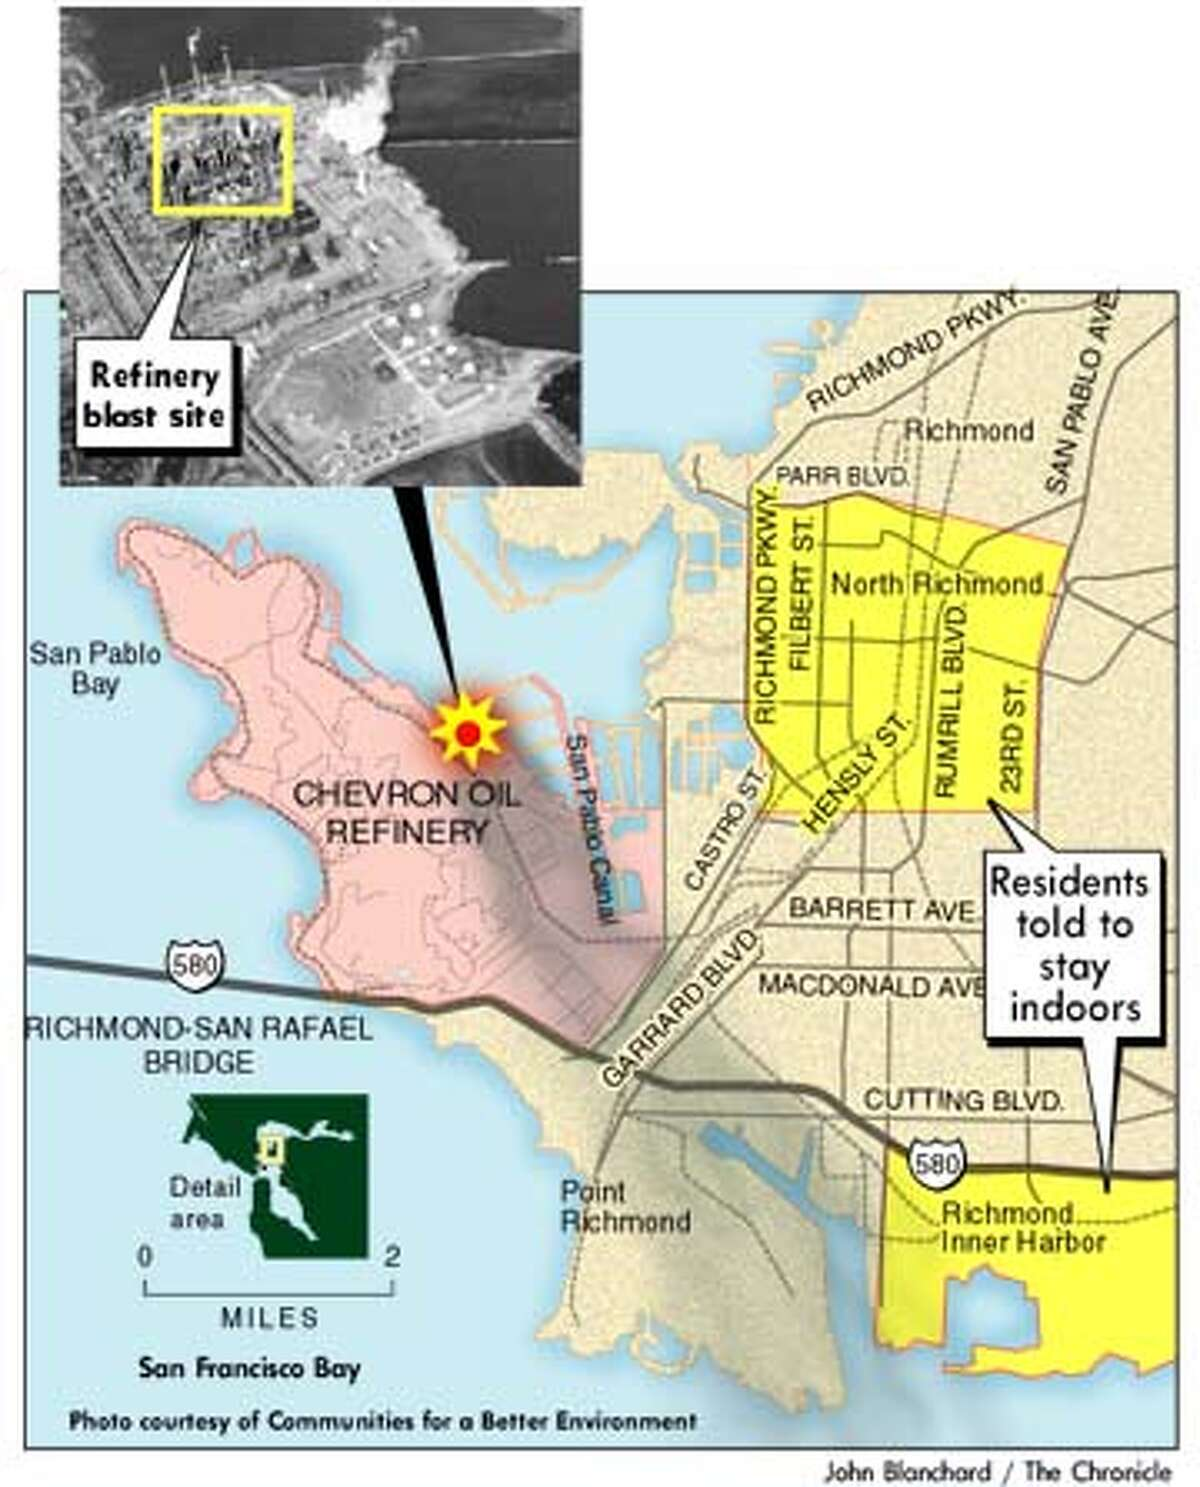 The Refinery Blast Site. Chronicle graphic by John Blanchard